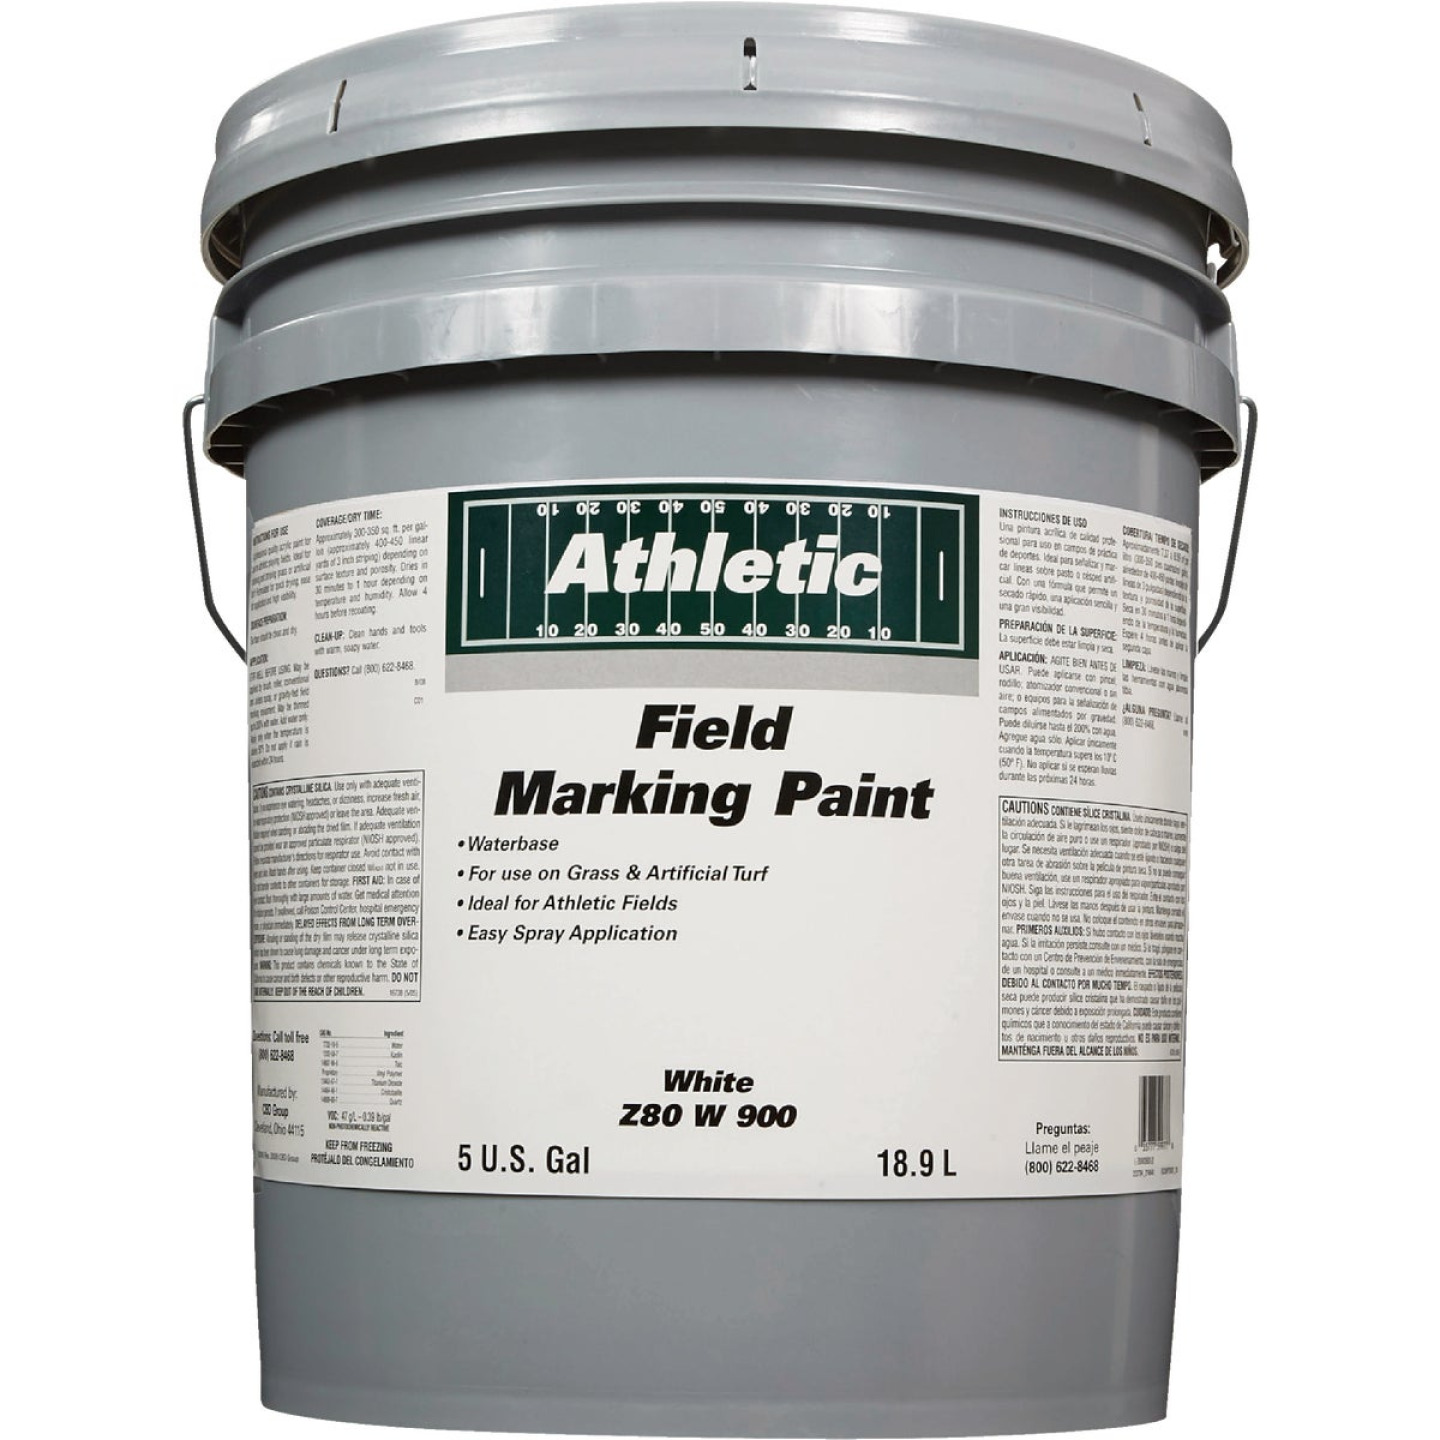 Field Marking Paint White 5 Gal Acrylic Flat Field Marking Paint Image 2